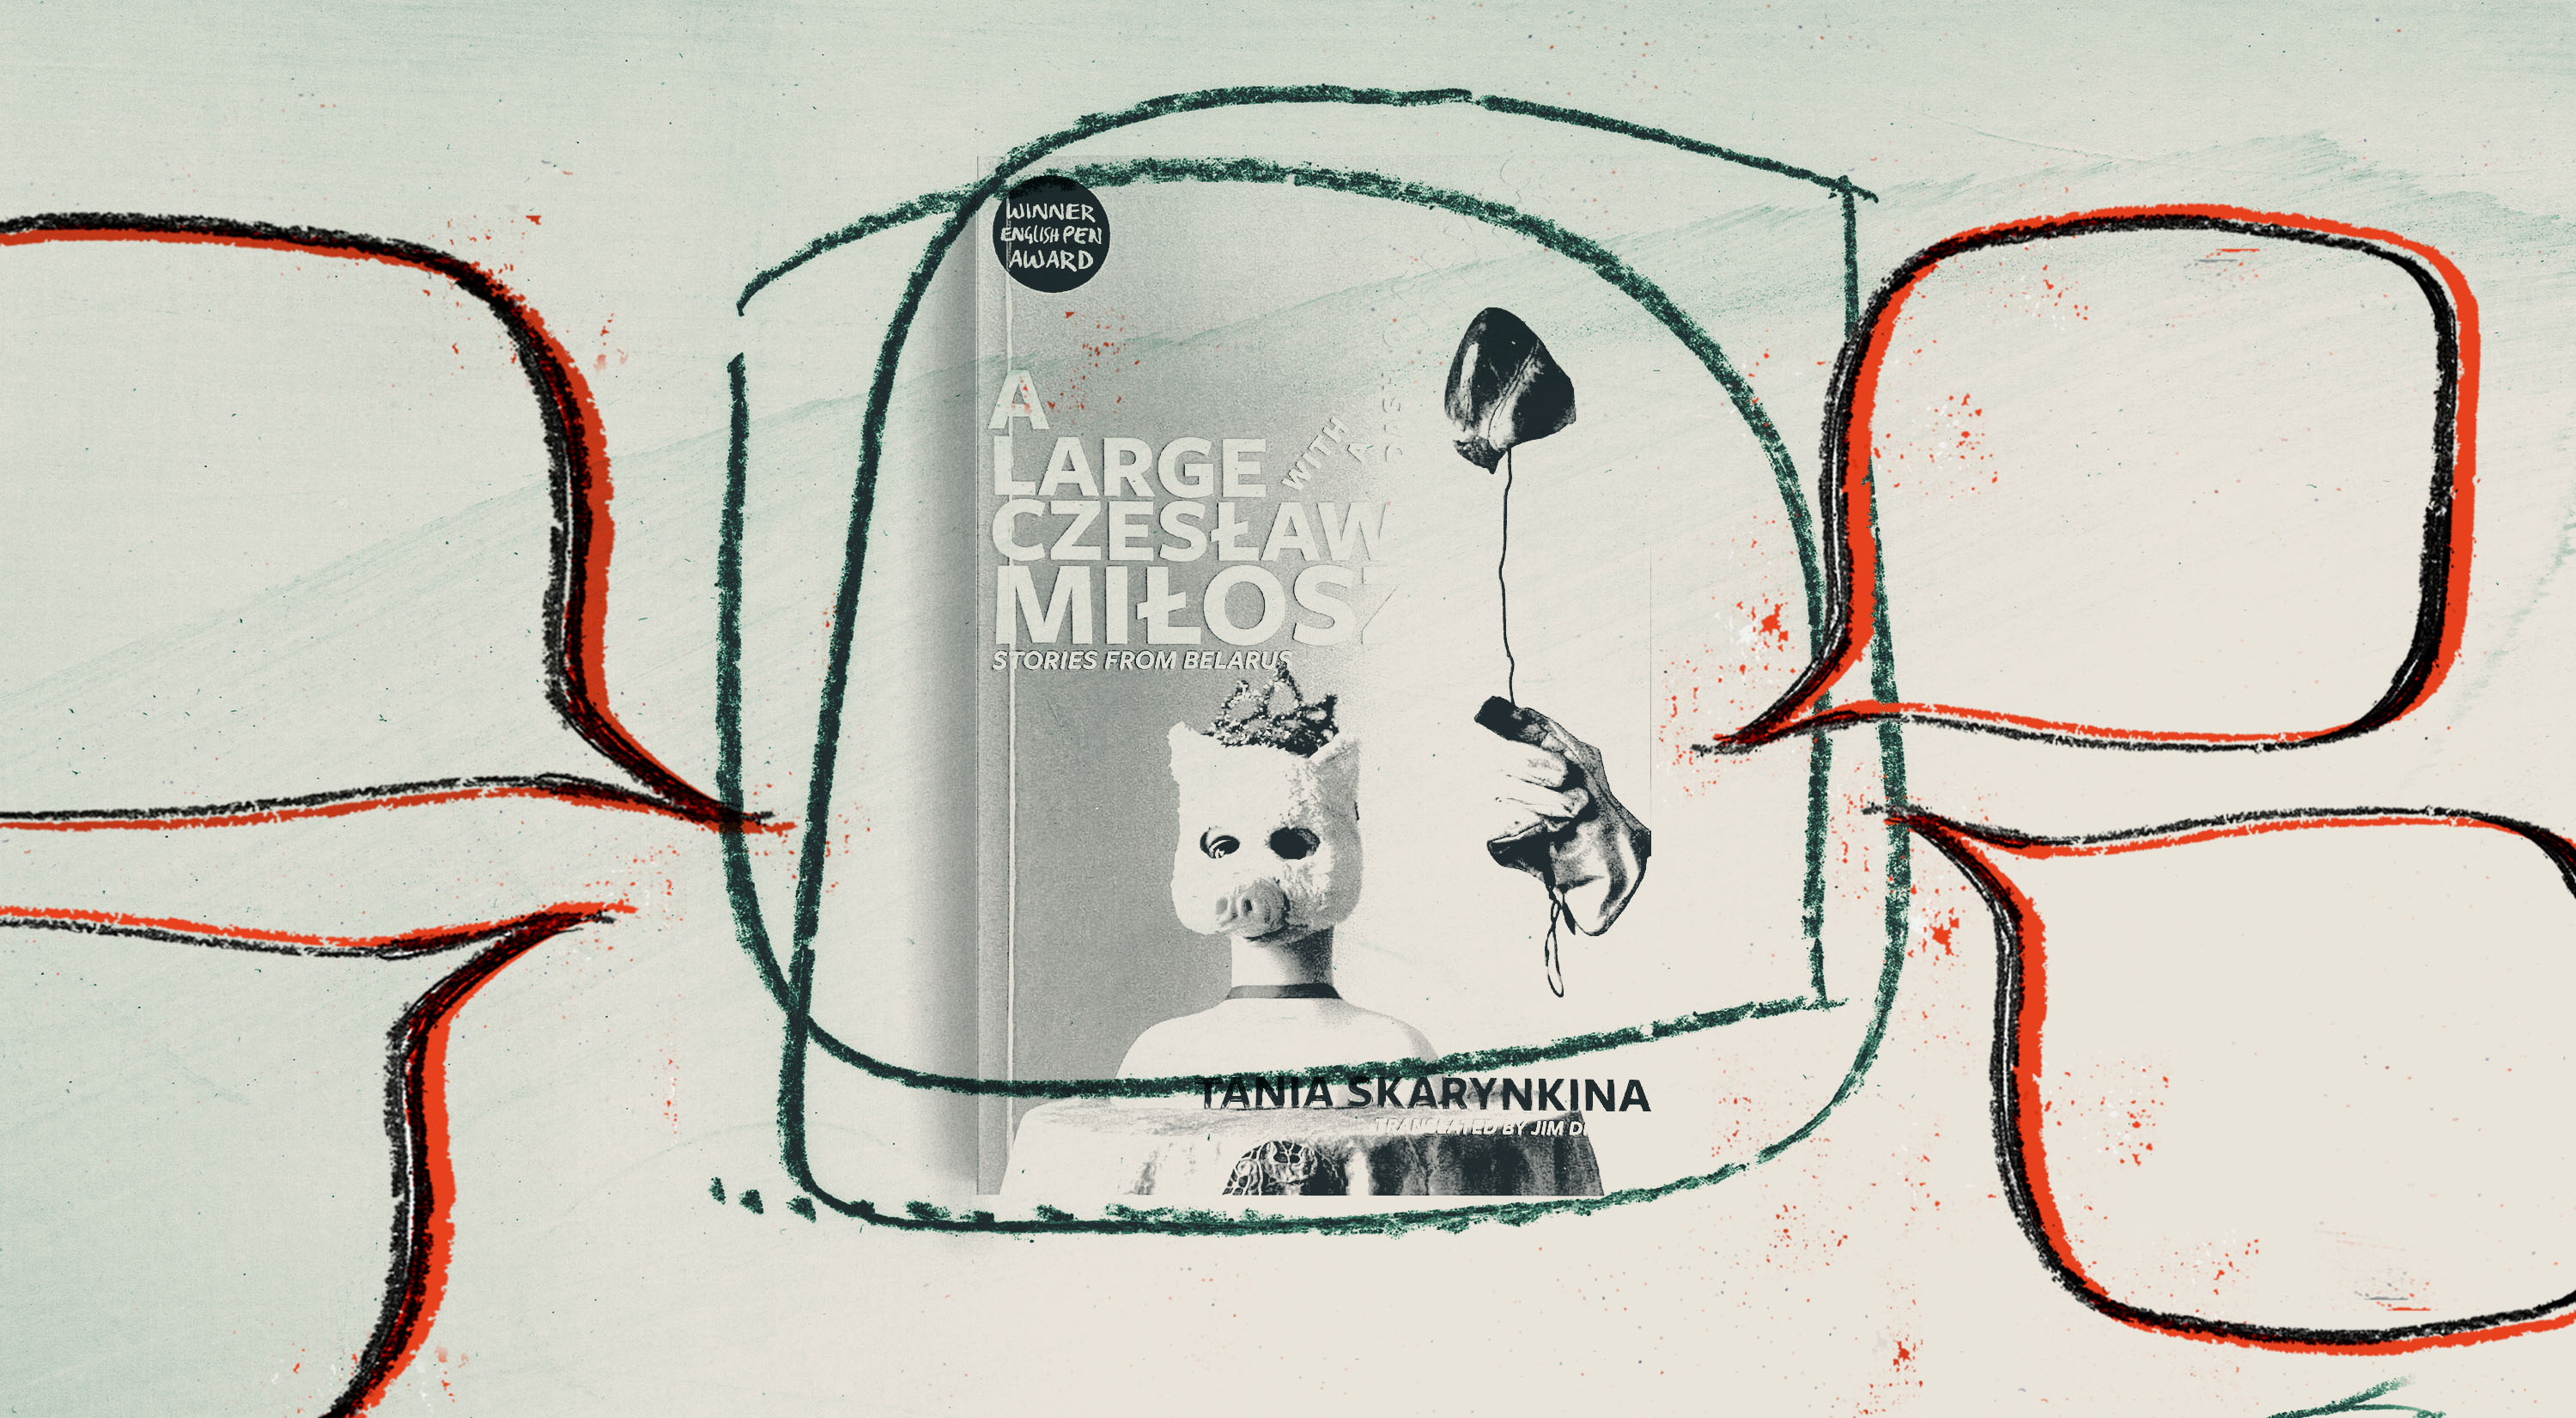 The cover of the book 'a large Czeslaw Milosz with a Dash of Elvis Presley' surrounded by red speech bubbles